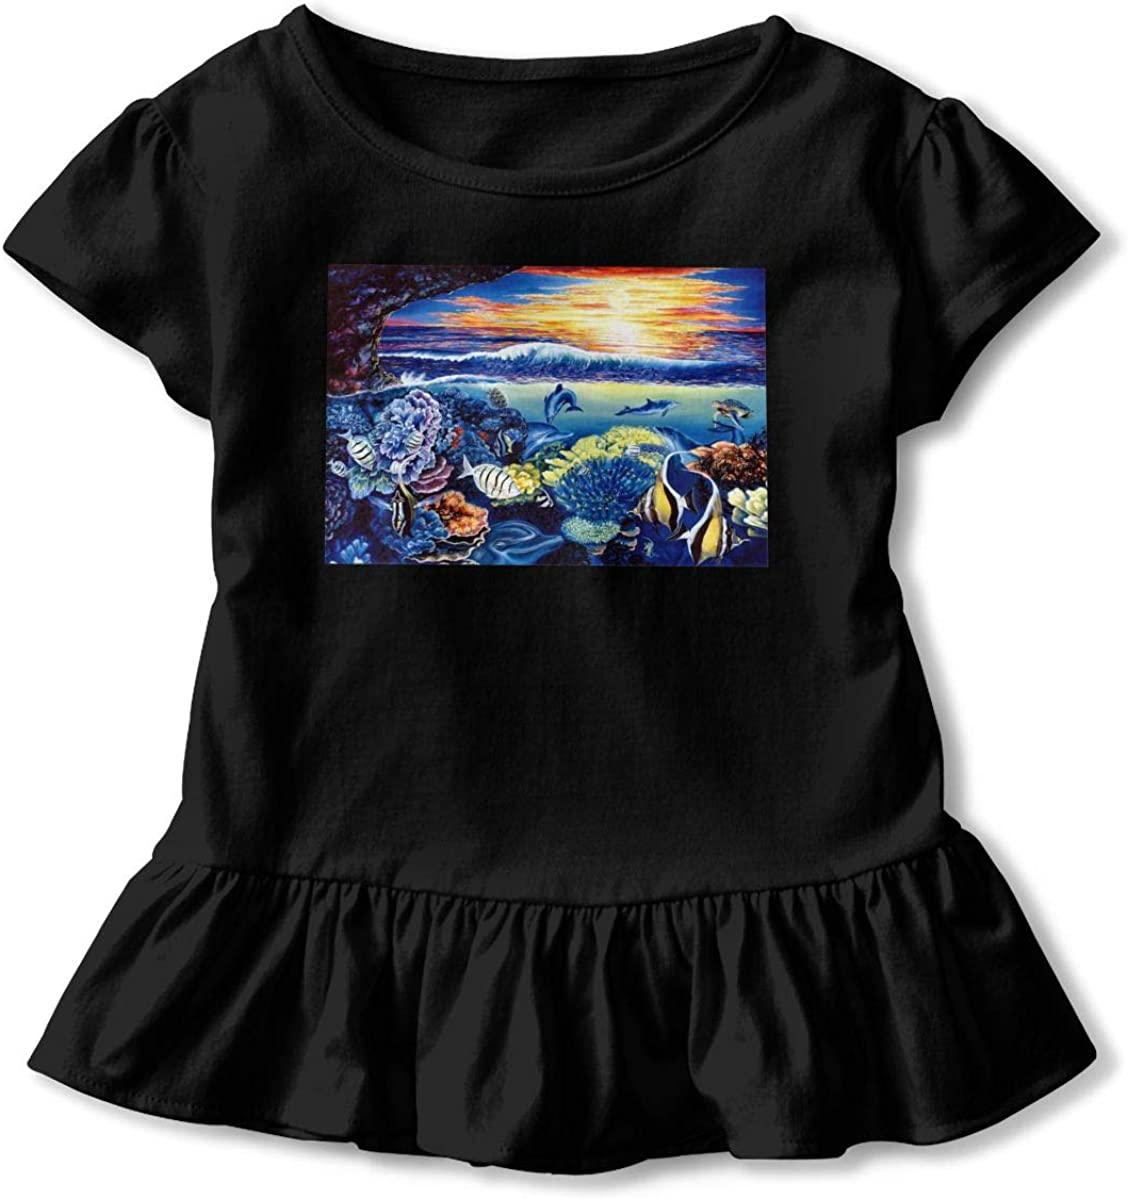 Sunset Underwater Dolphin Baby Girls Short Sleeve T-Shirt Flounced Graphic Shirt Dress for 2-6 Years Old Baby